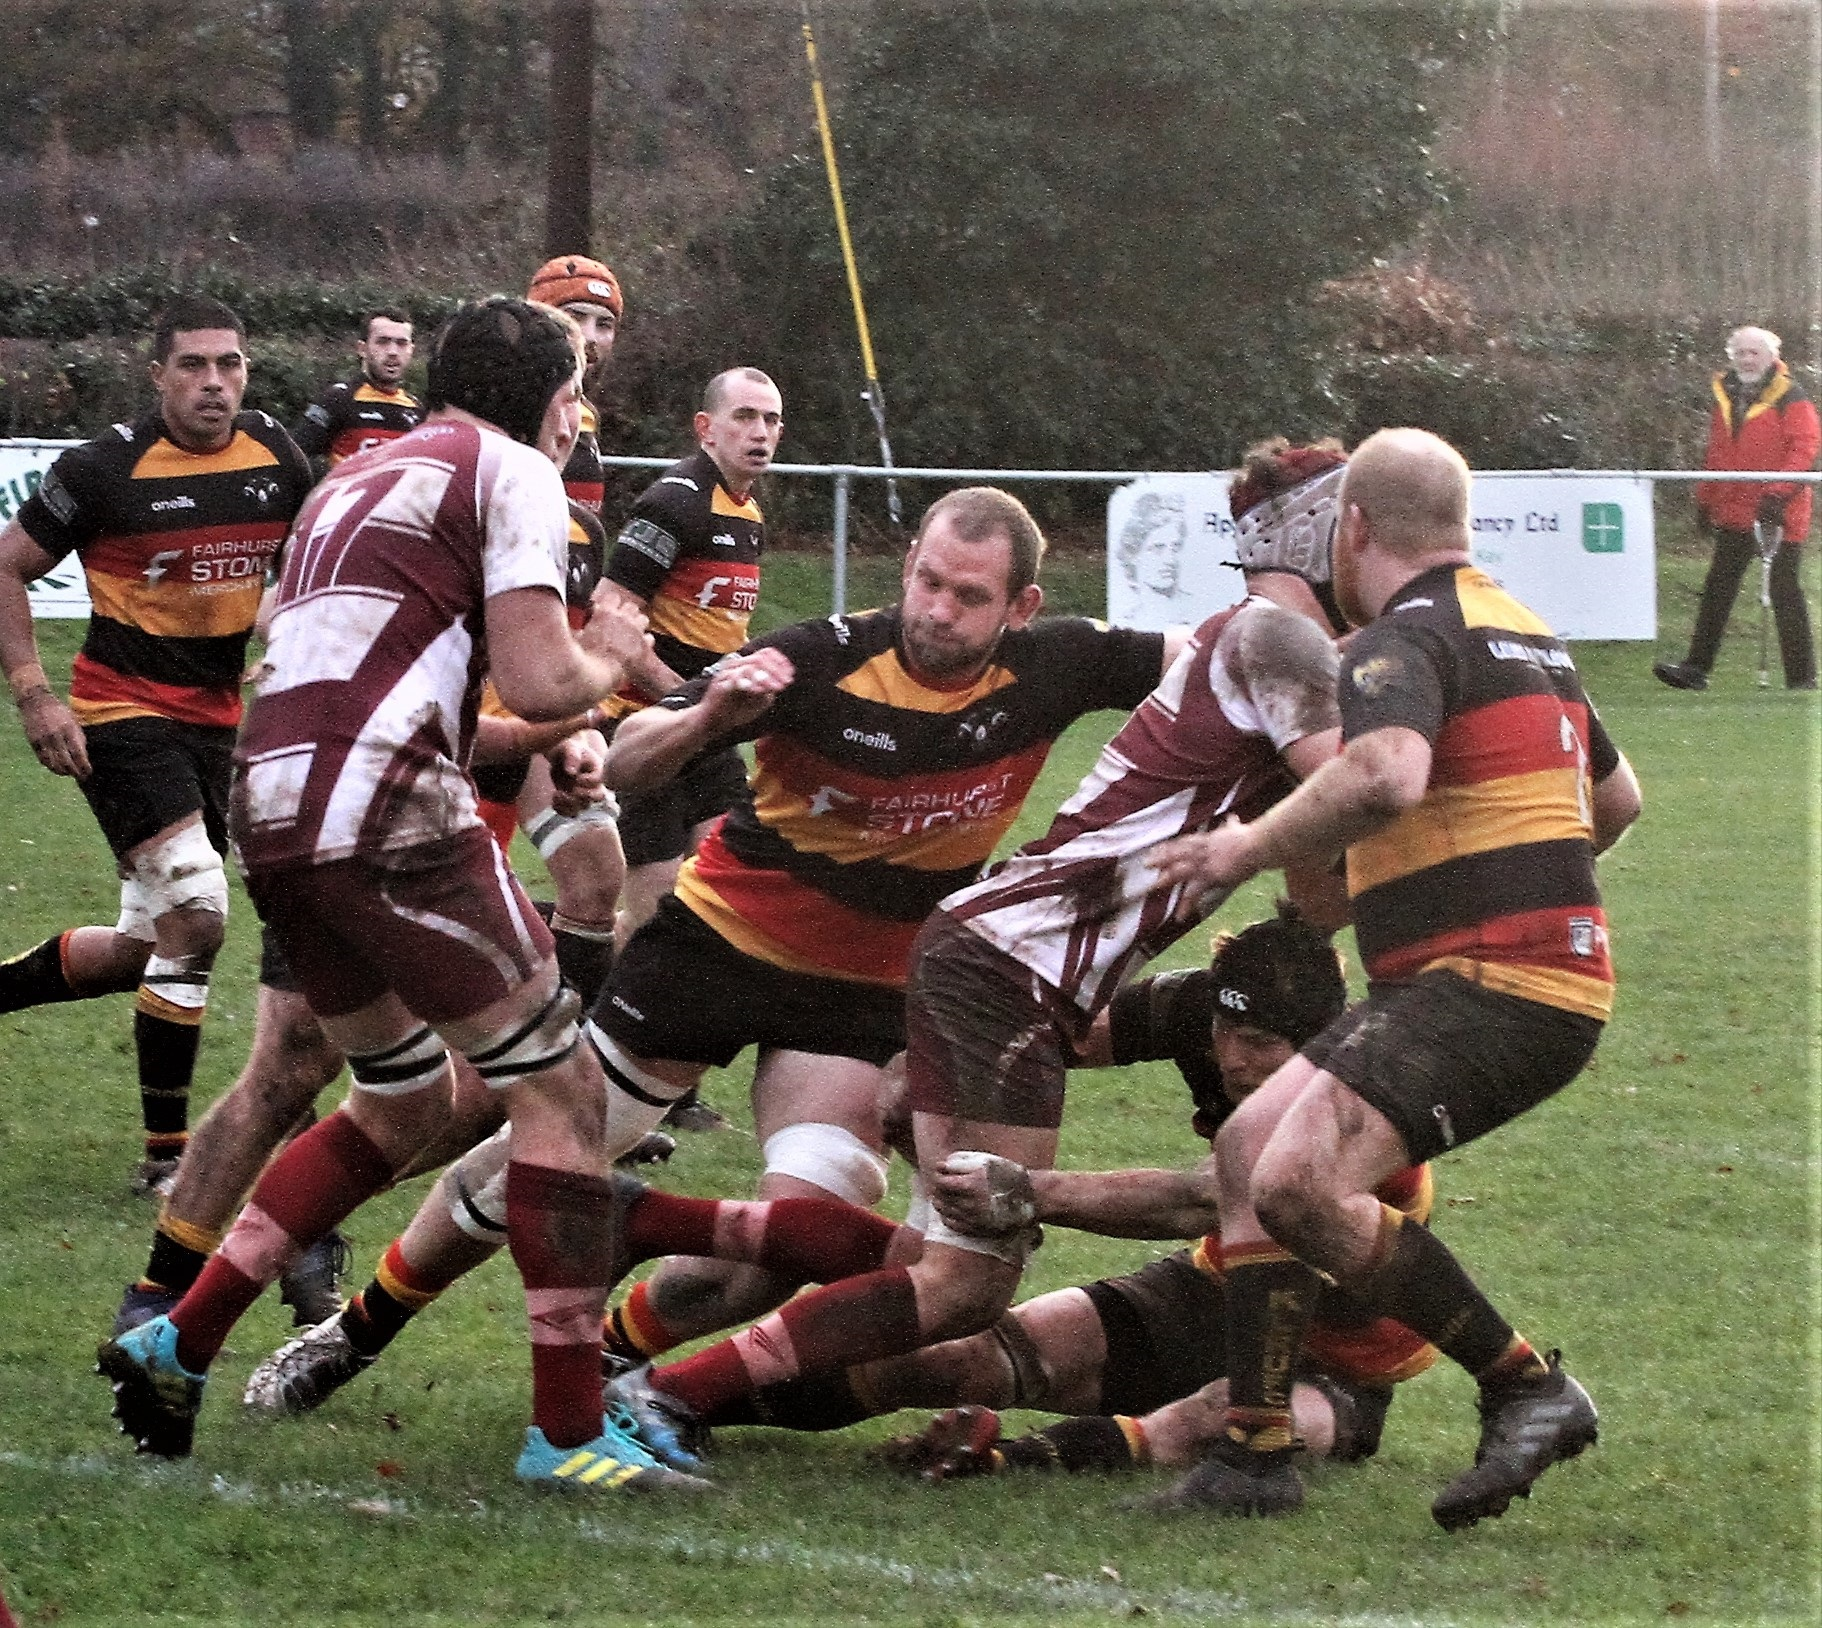 Leandro Kwiczor, Craig Galbraith (tackler) and Dan Armistead at the heart of Kirkby's defence at Wirral